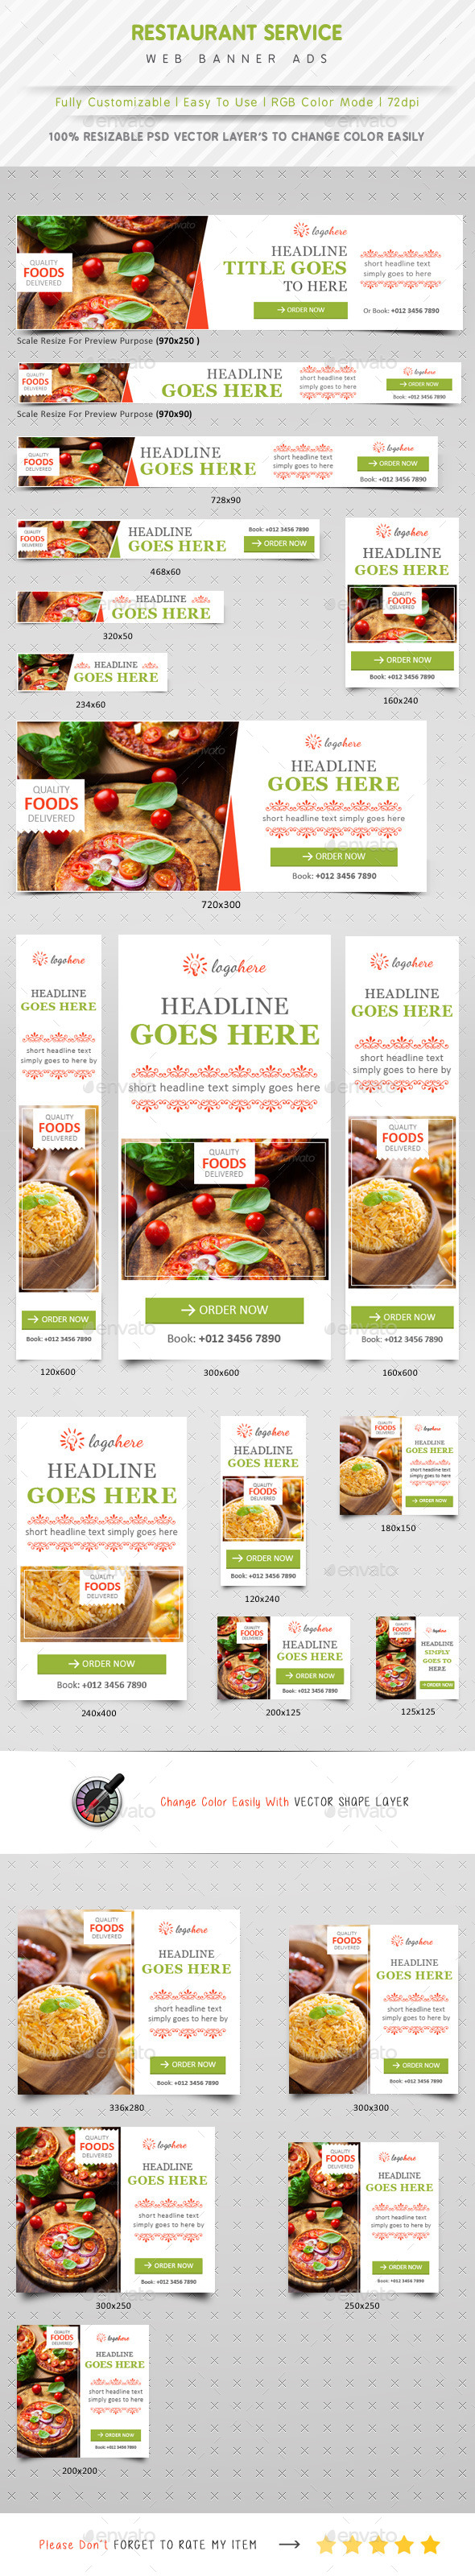 Restaurant Service Web Banner Ads - Banners & Ads Web Elements